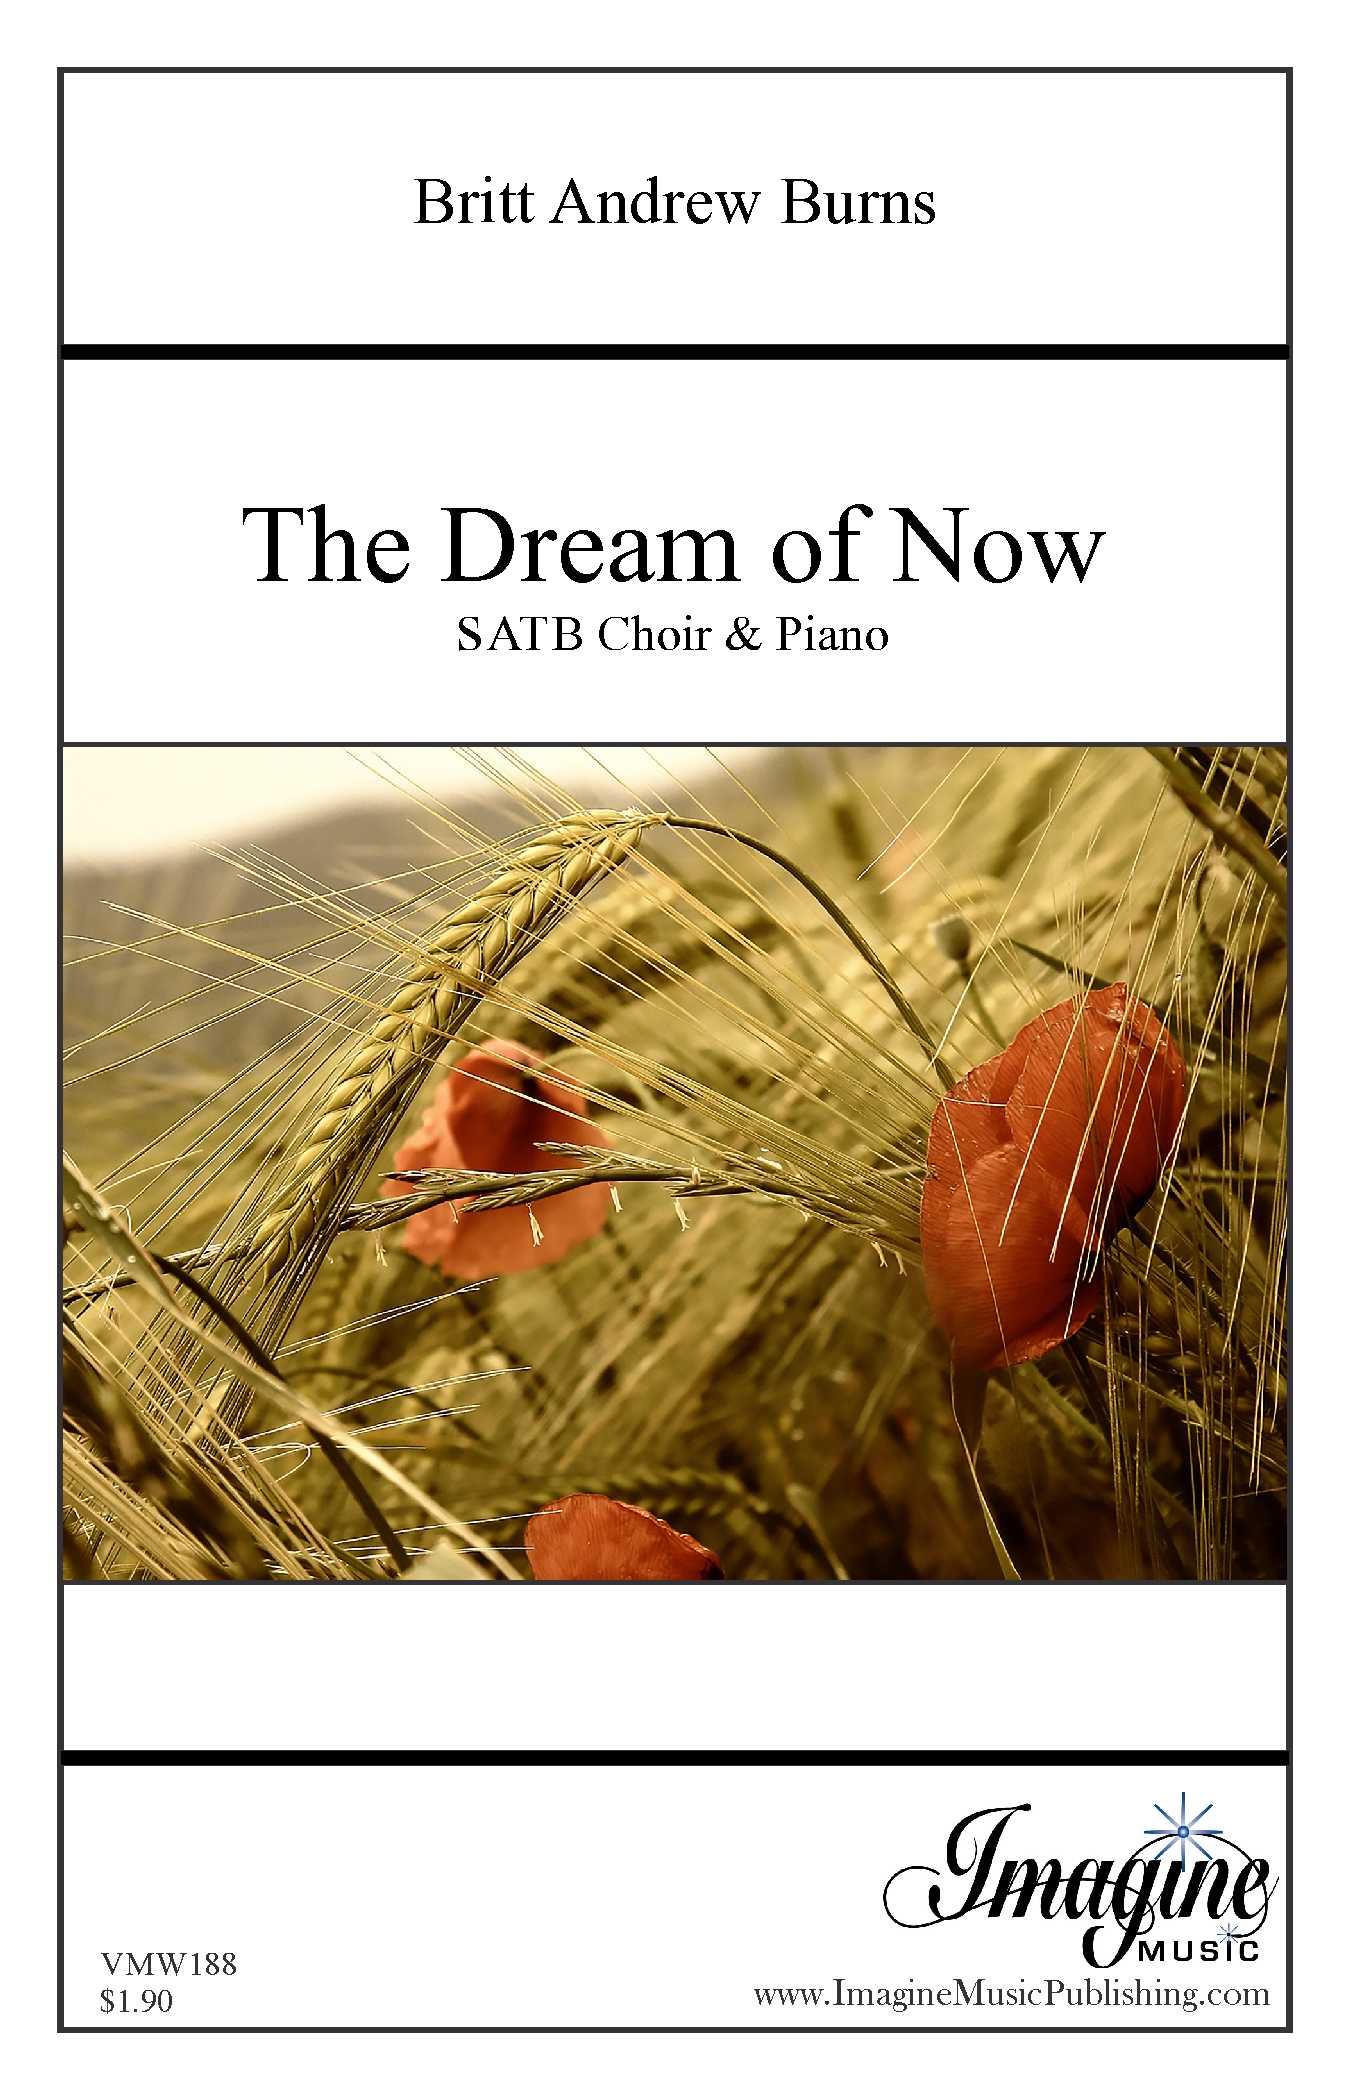 The Dream of Now